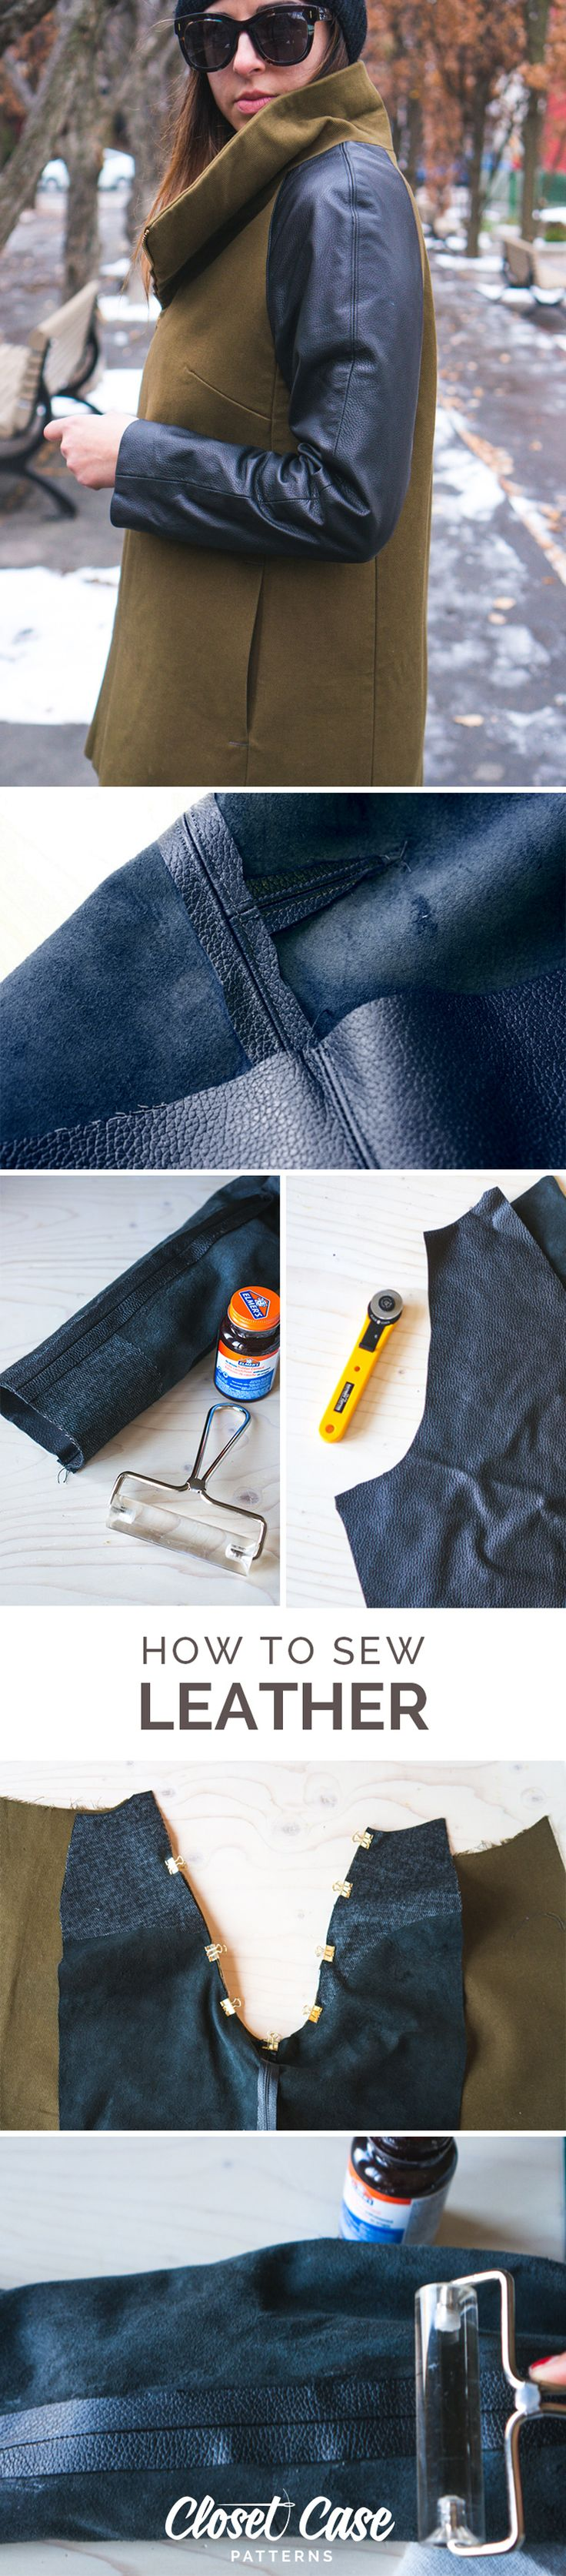 How To Sew Leather & Faux Leather